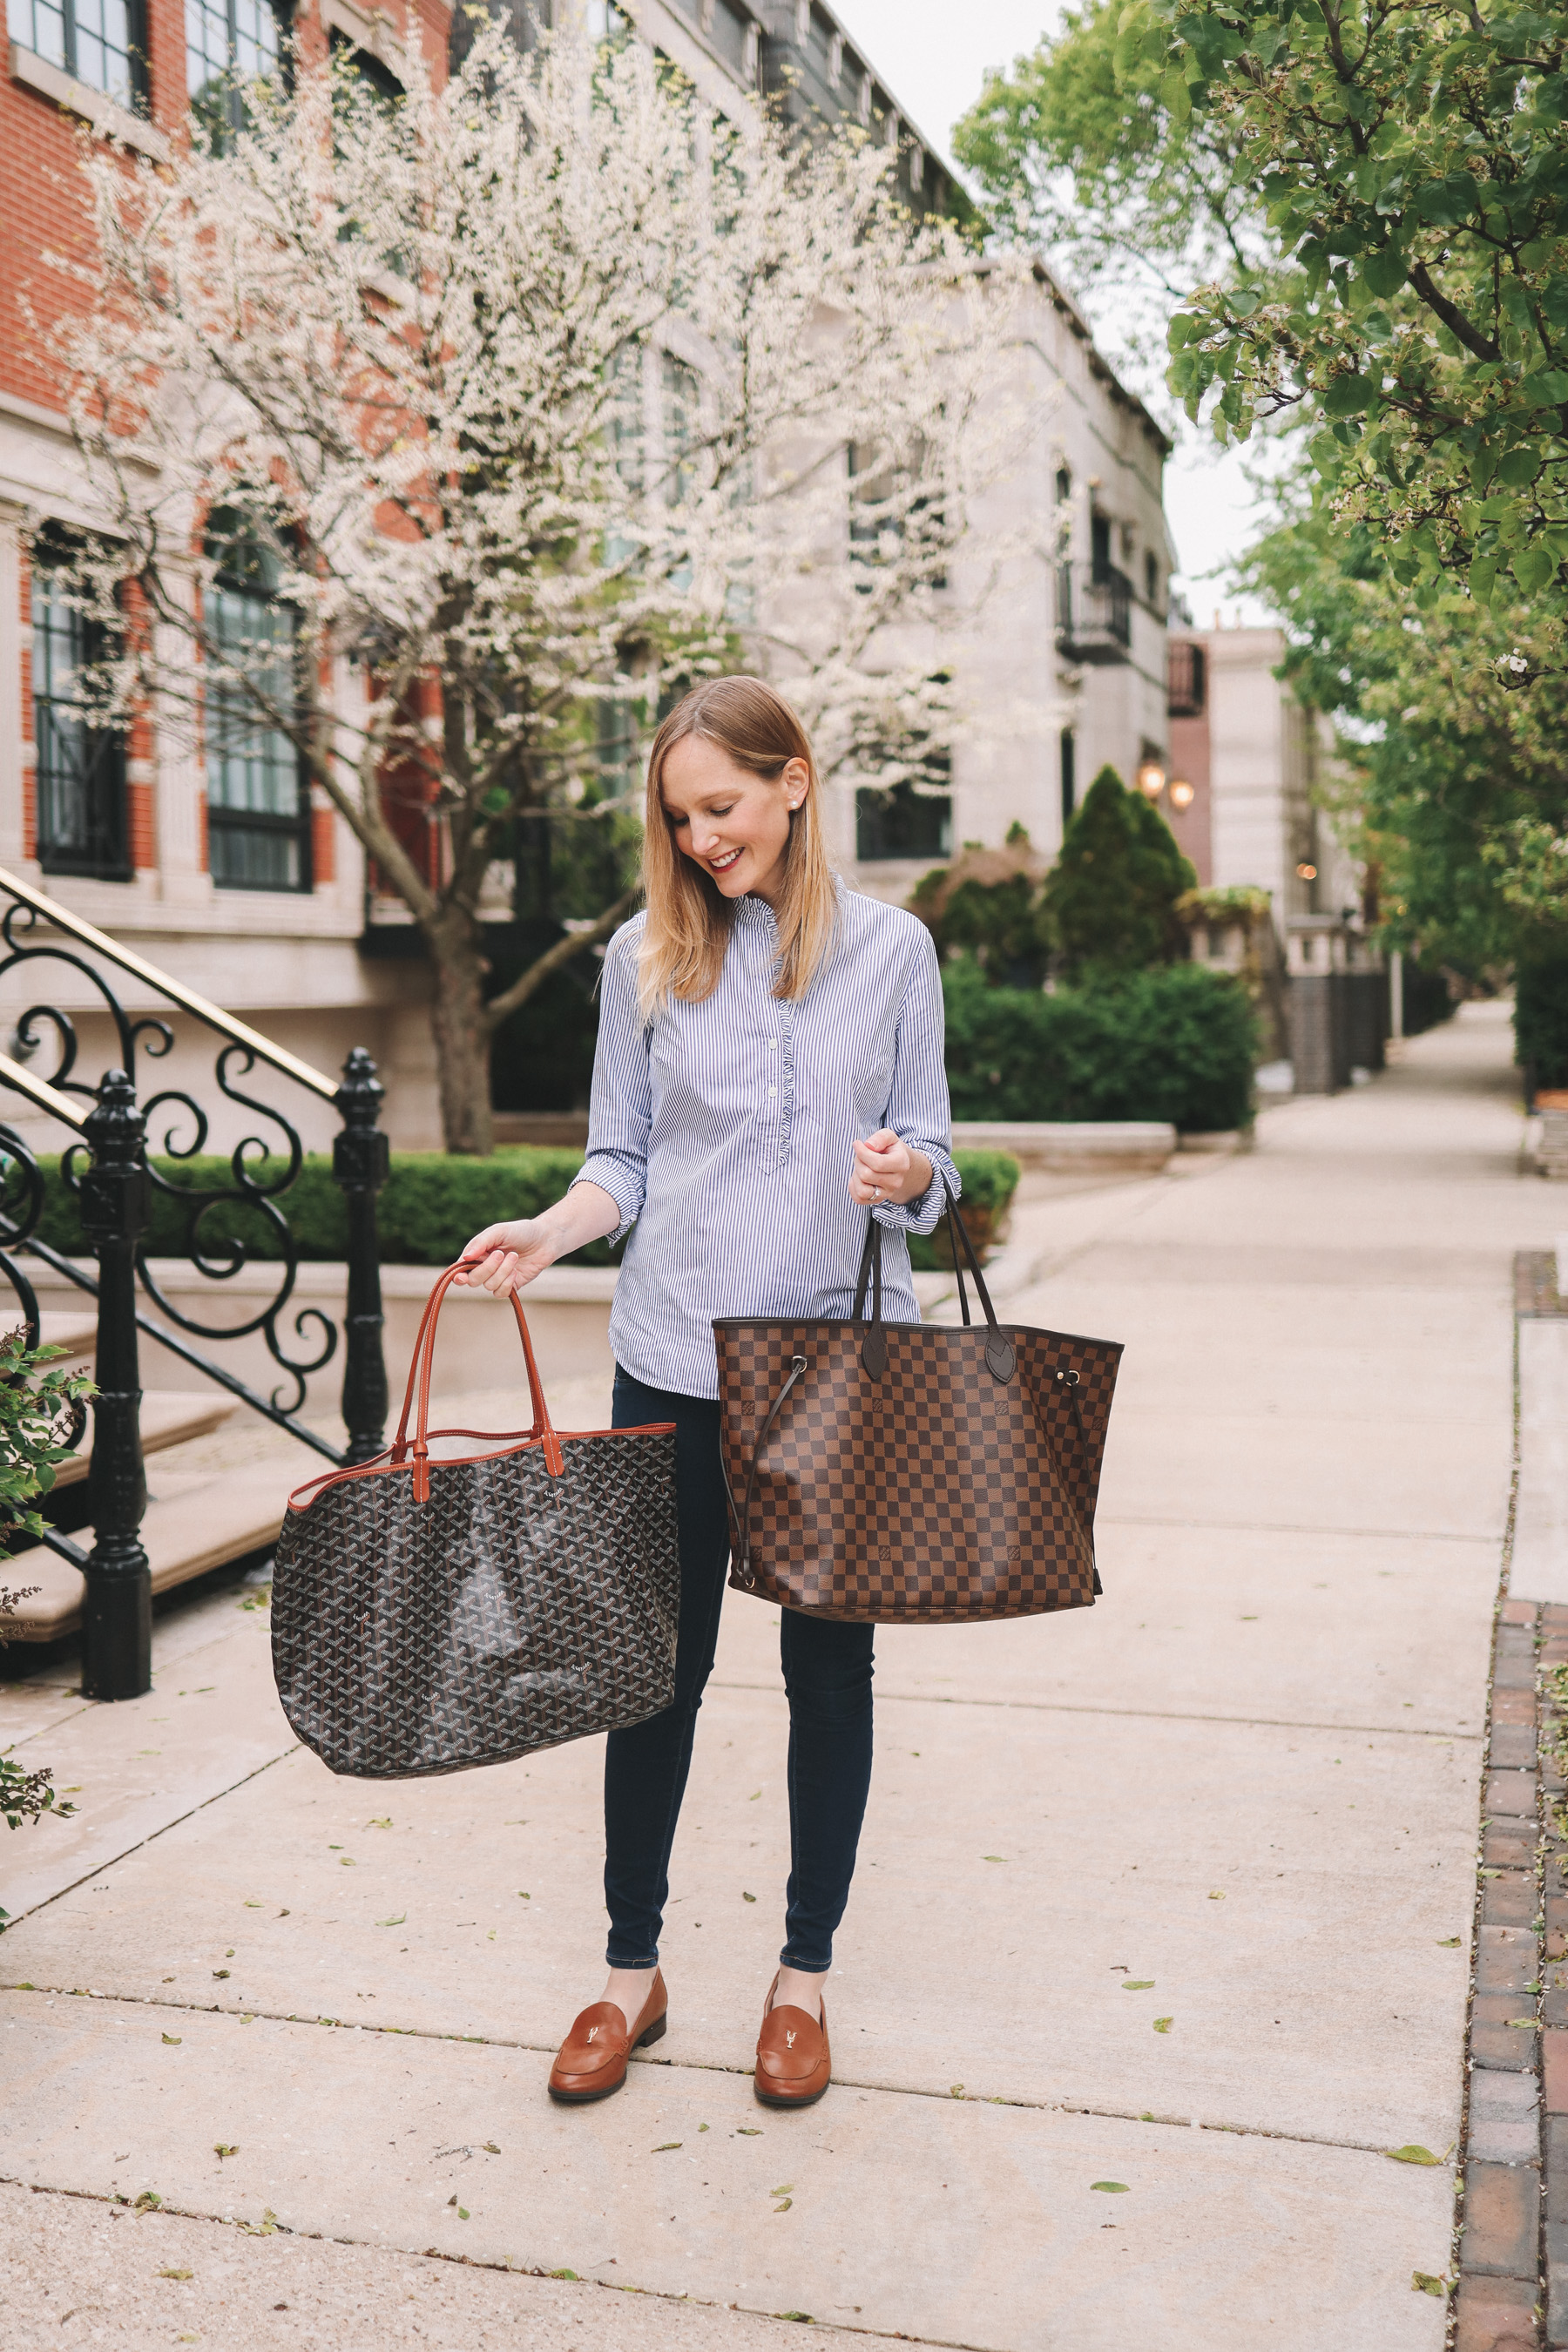 Kelly Larkin is sharing a Louis Vuitton Neverfull vs Goyard Saint Louis Totes review